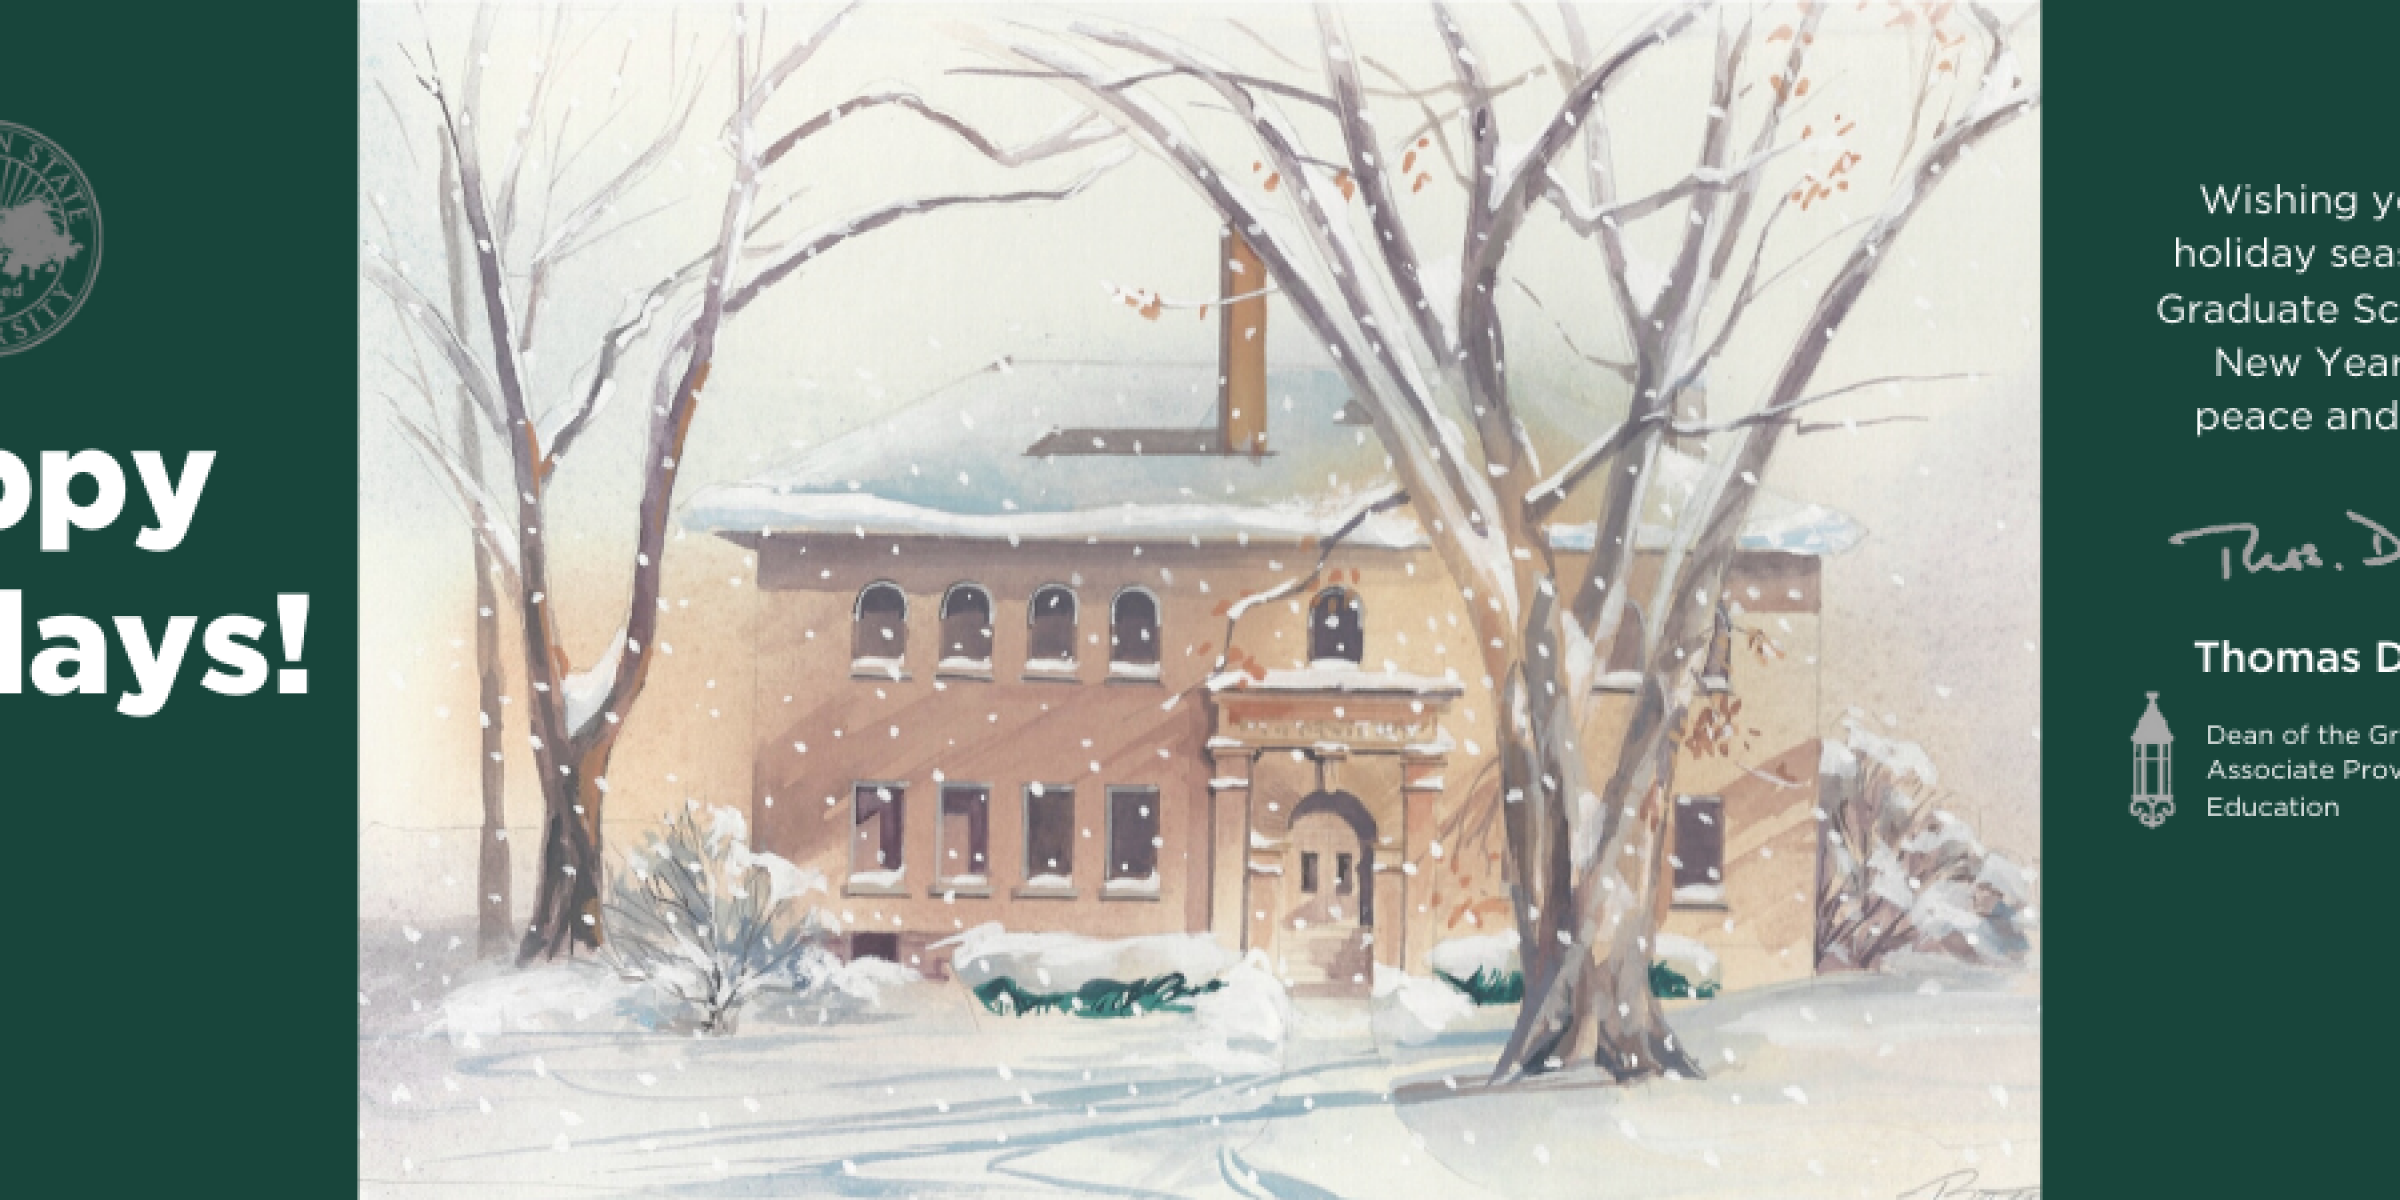 Happy Holidays from the Graduate School